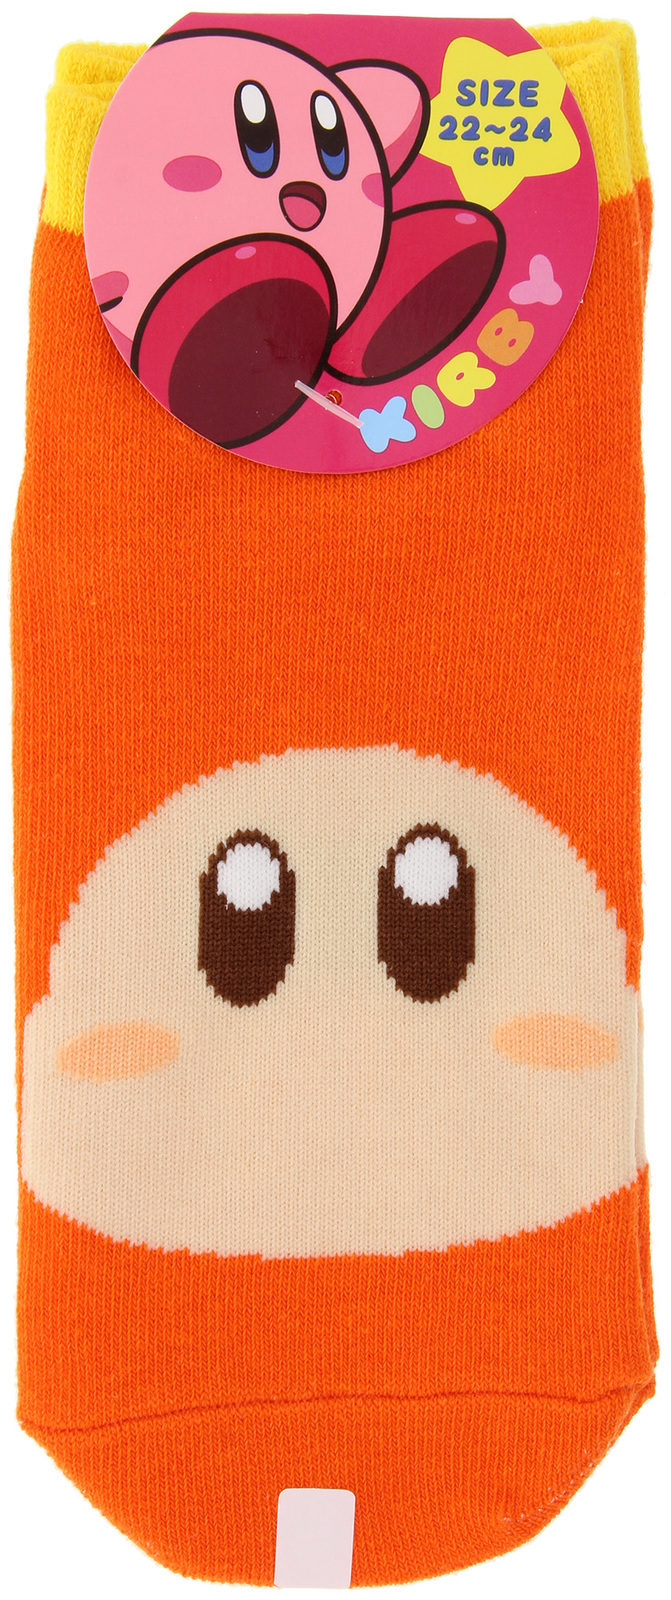 Kirby Socks Waddle Dee At Mighty Ape Nz